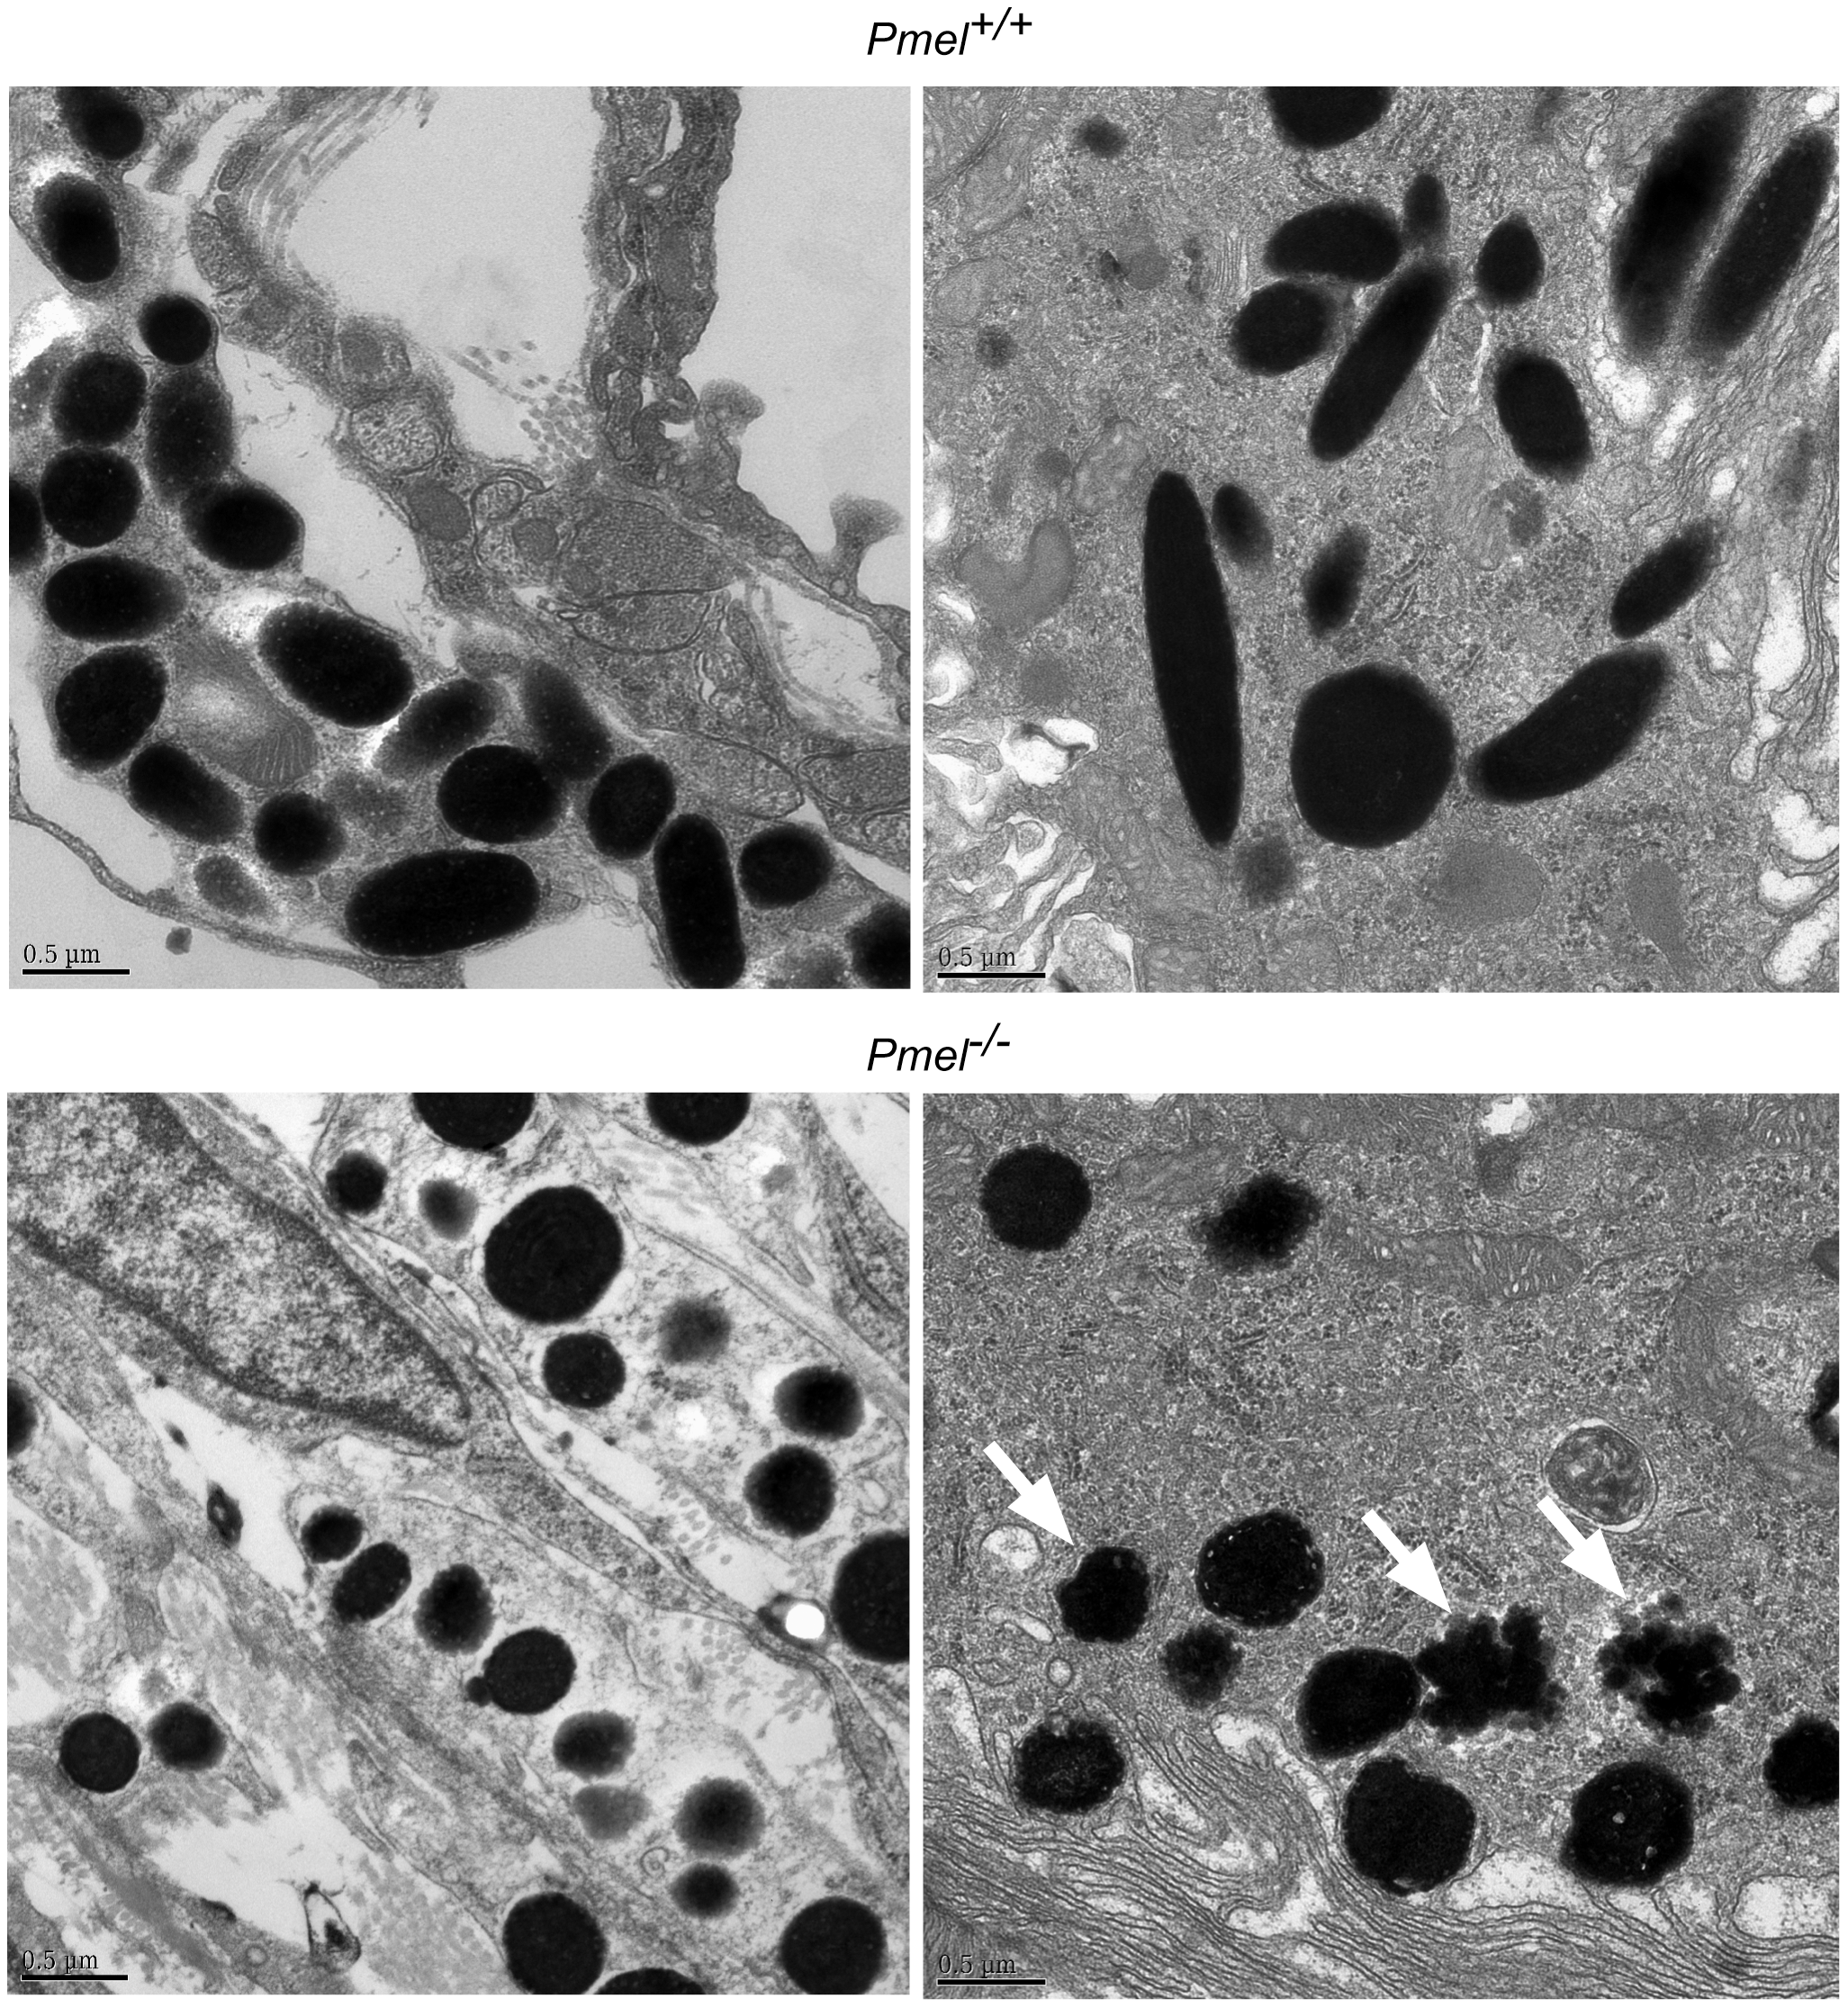 Electron microscopy of choroidal (upper and lower left micrographs) and RPE cells (upper and lower right micrographs), including melanosomes, from wild-type C57BL/6 mice (upper two micrographs) and <i>Pmel<sup>−/−</sup></i> mice (lower two micrographs), respectively.